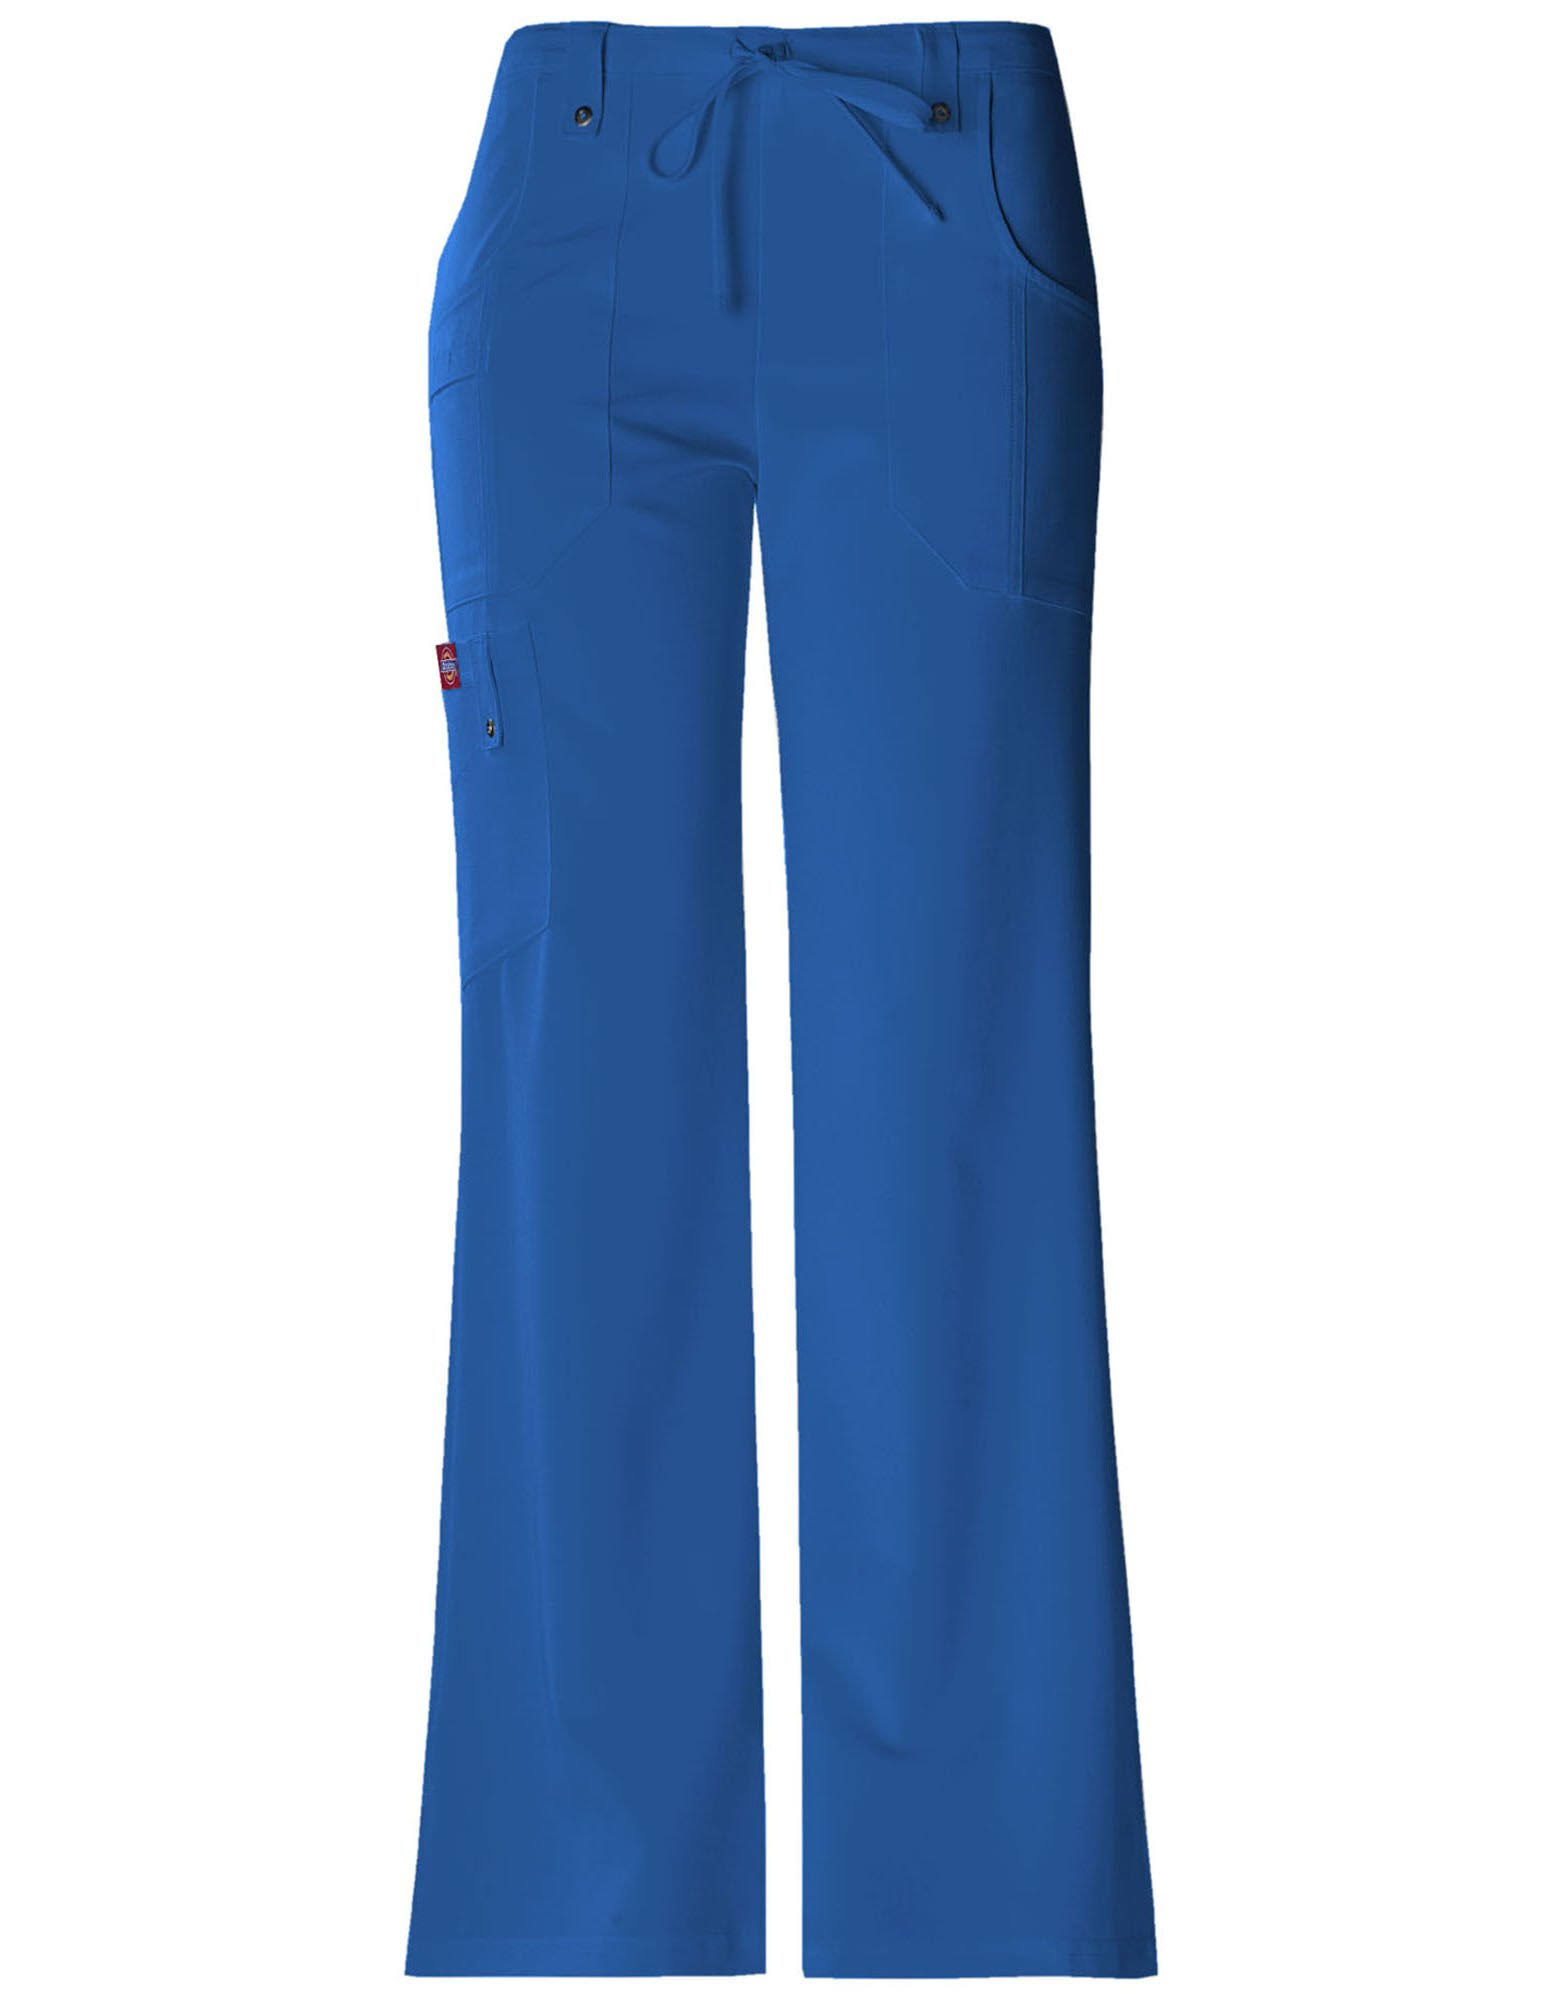 Dickies Xtreme Stretch Women's Drawstring Flare Leg Scrub Pants - Medium, Royal Blue